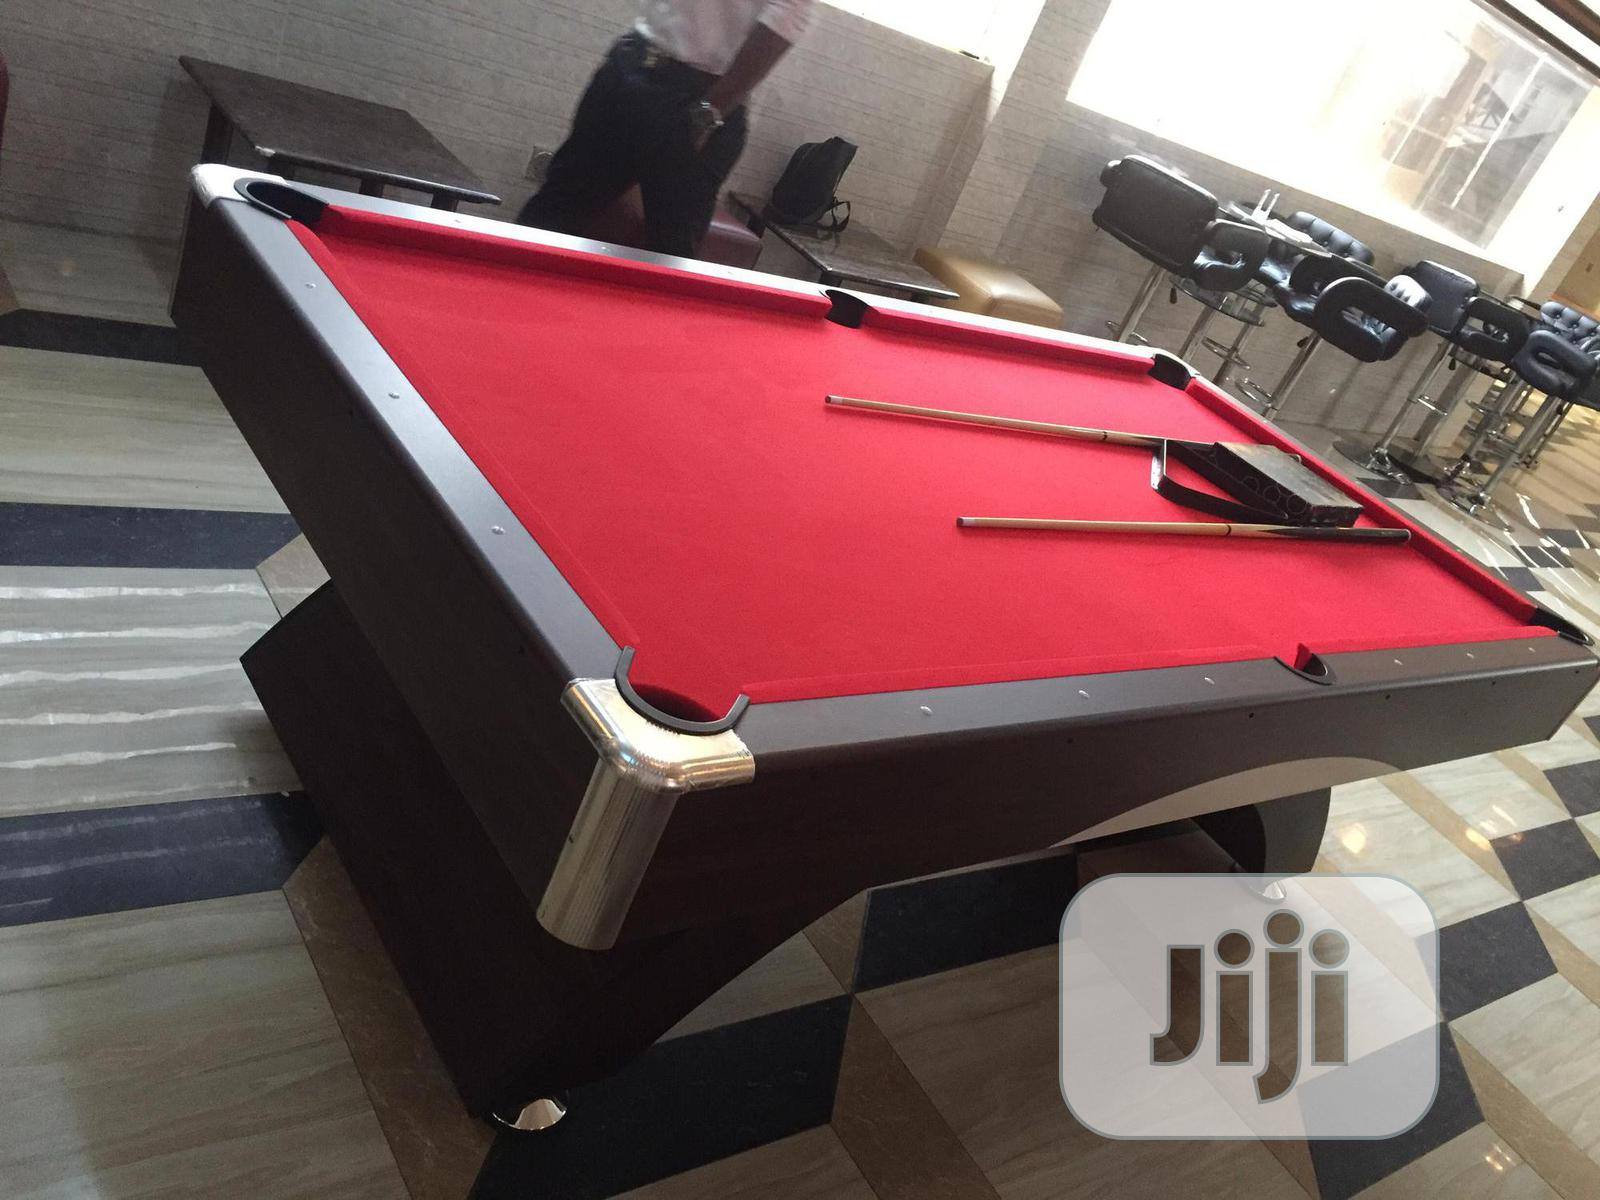 Brand New Imported 8fit Snooker Table. Delivery Included